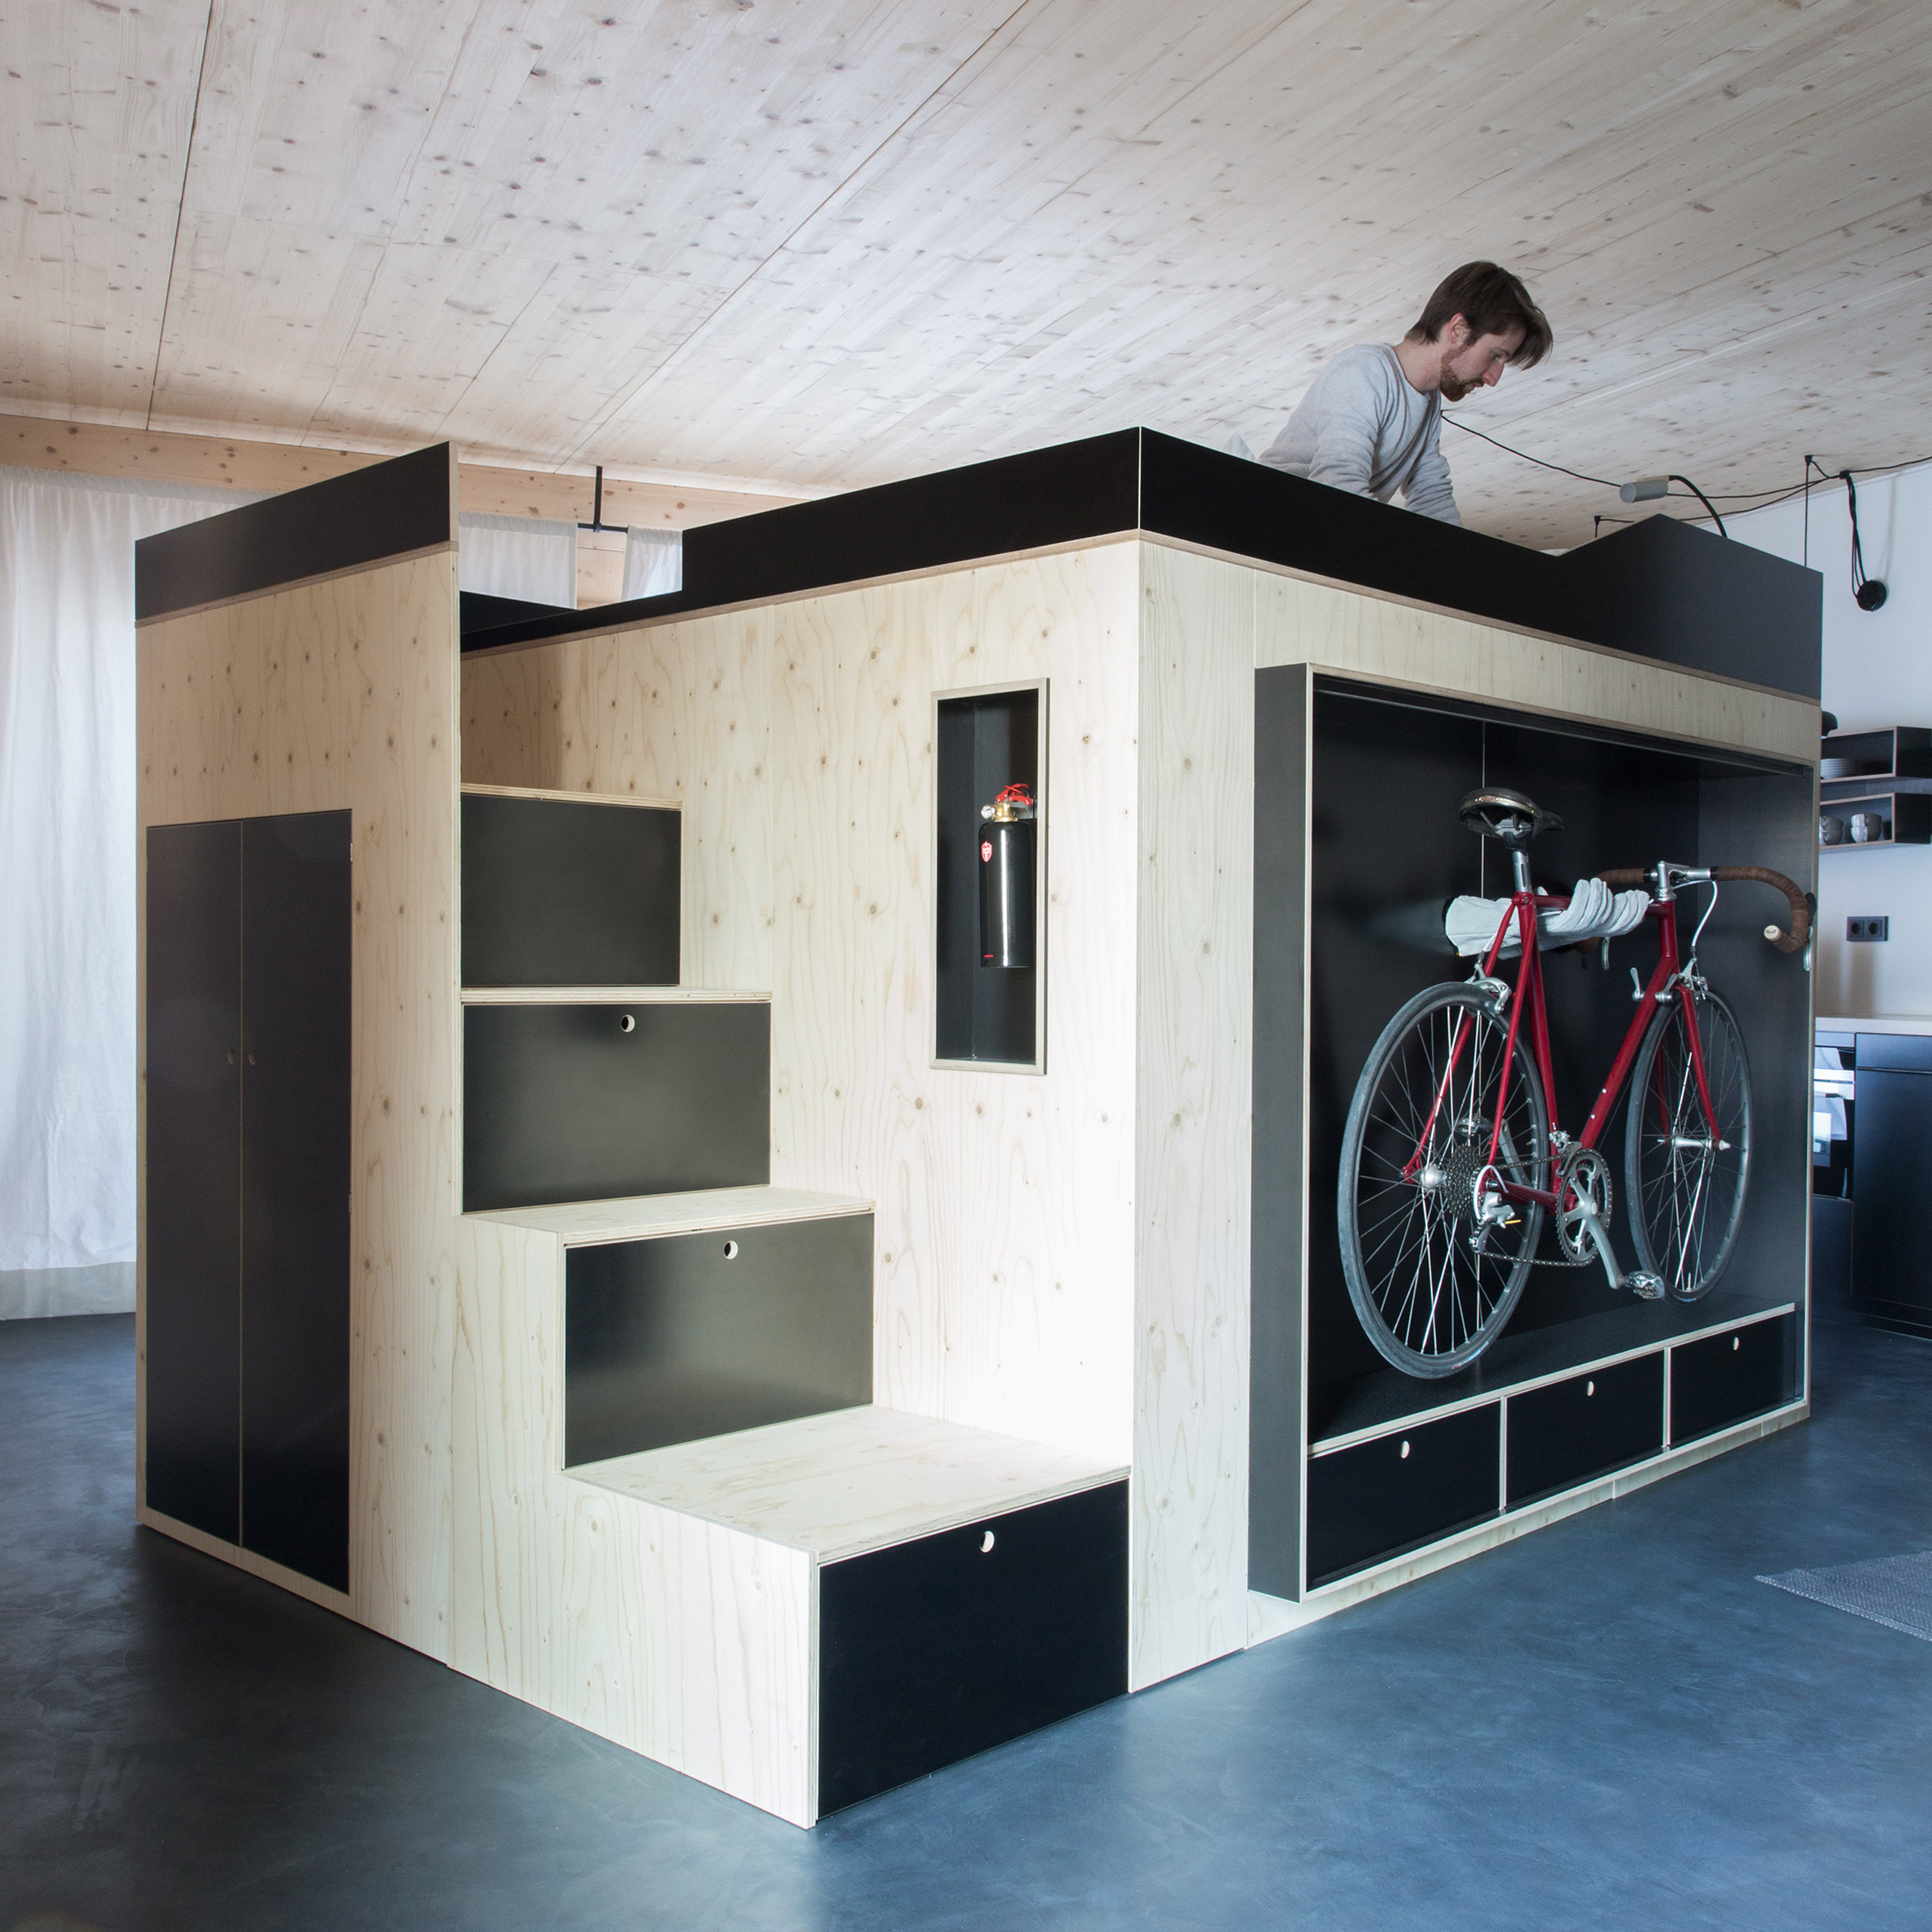 spacesaving furniture. Nils Holger Moormann Creates Space-saving Living Cube For Micro Apartments Spacesaving Furniture V